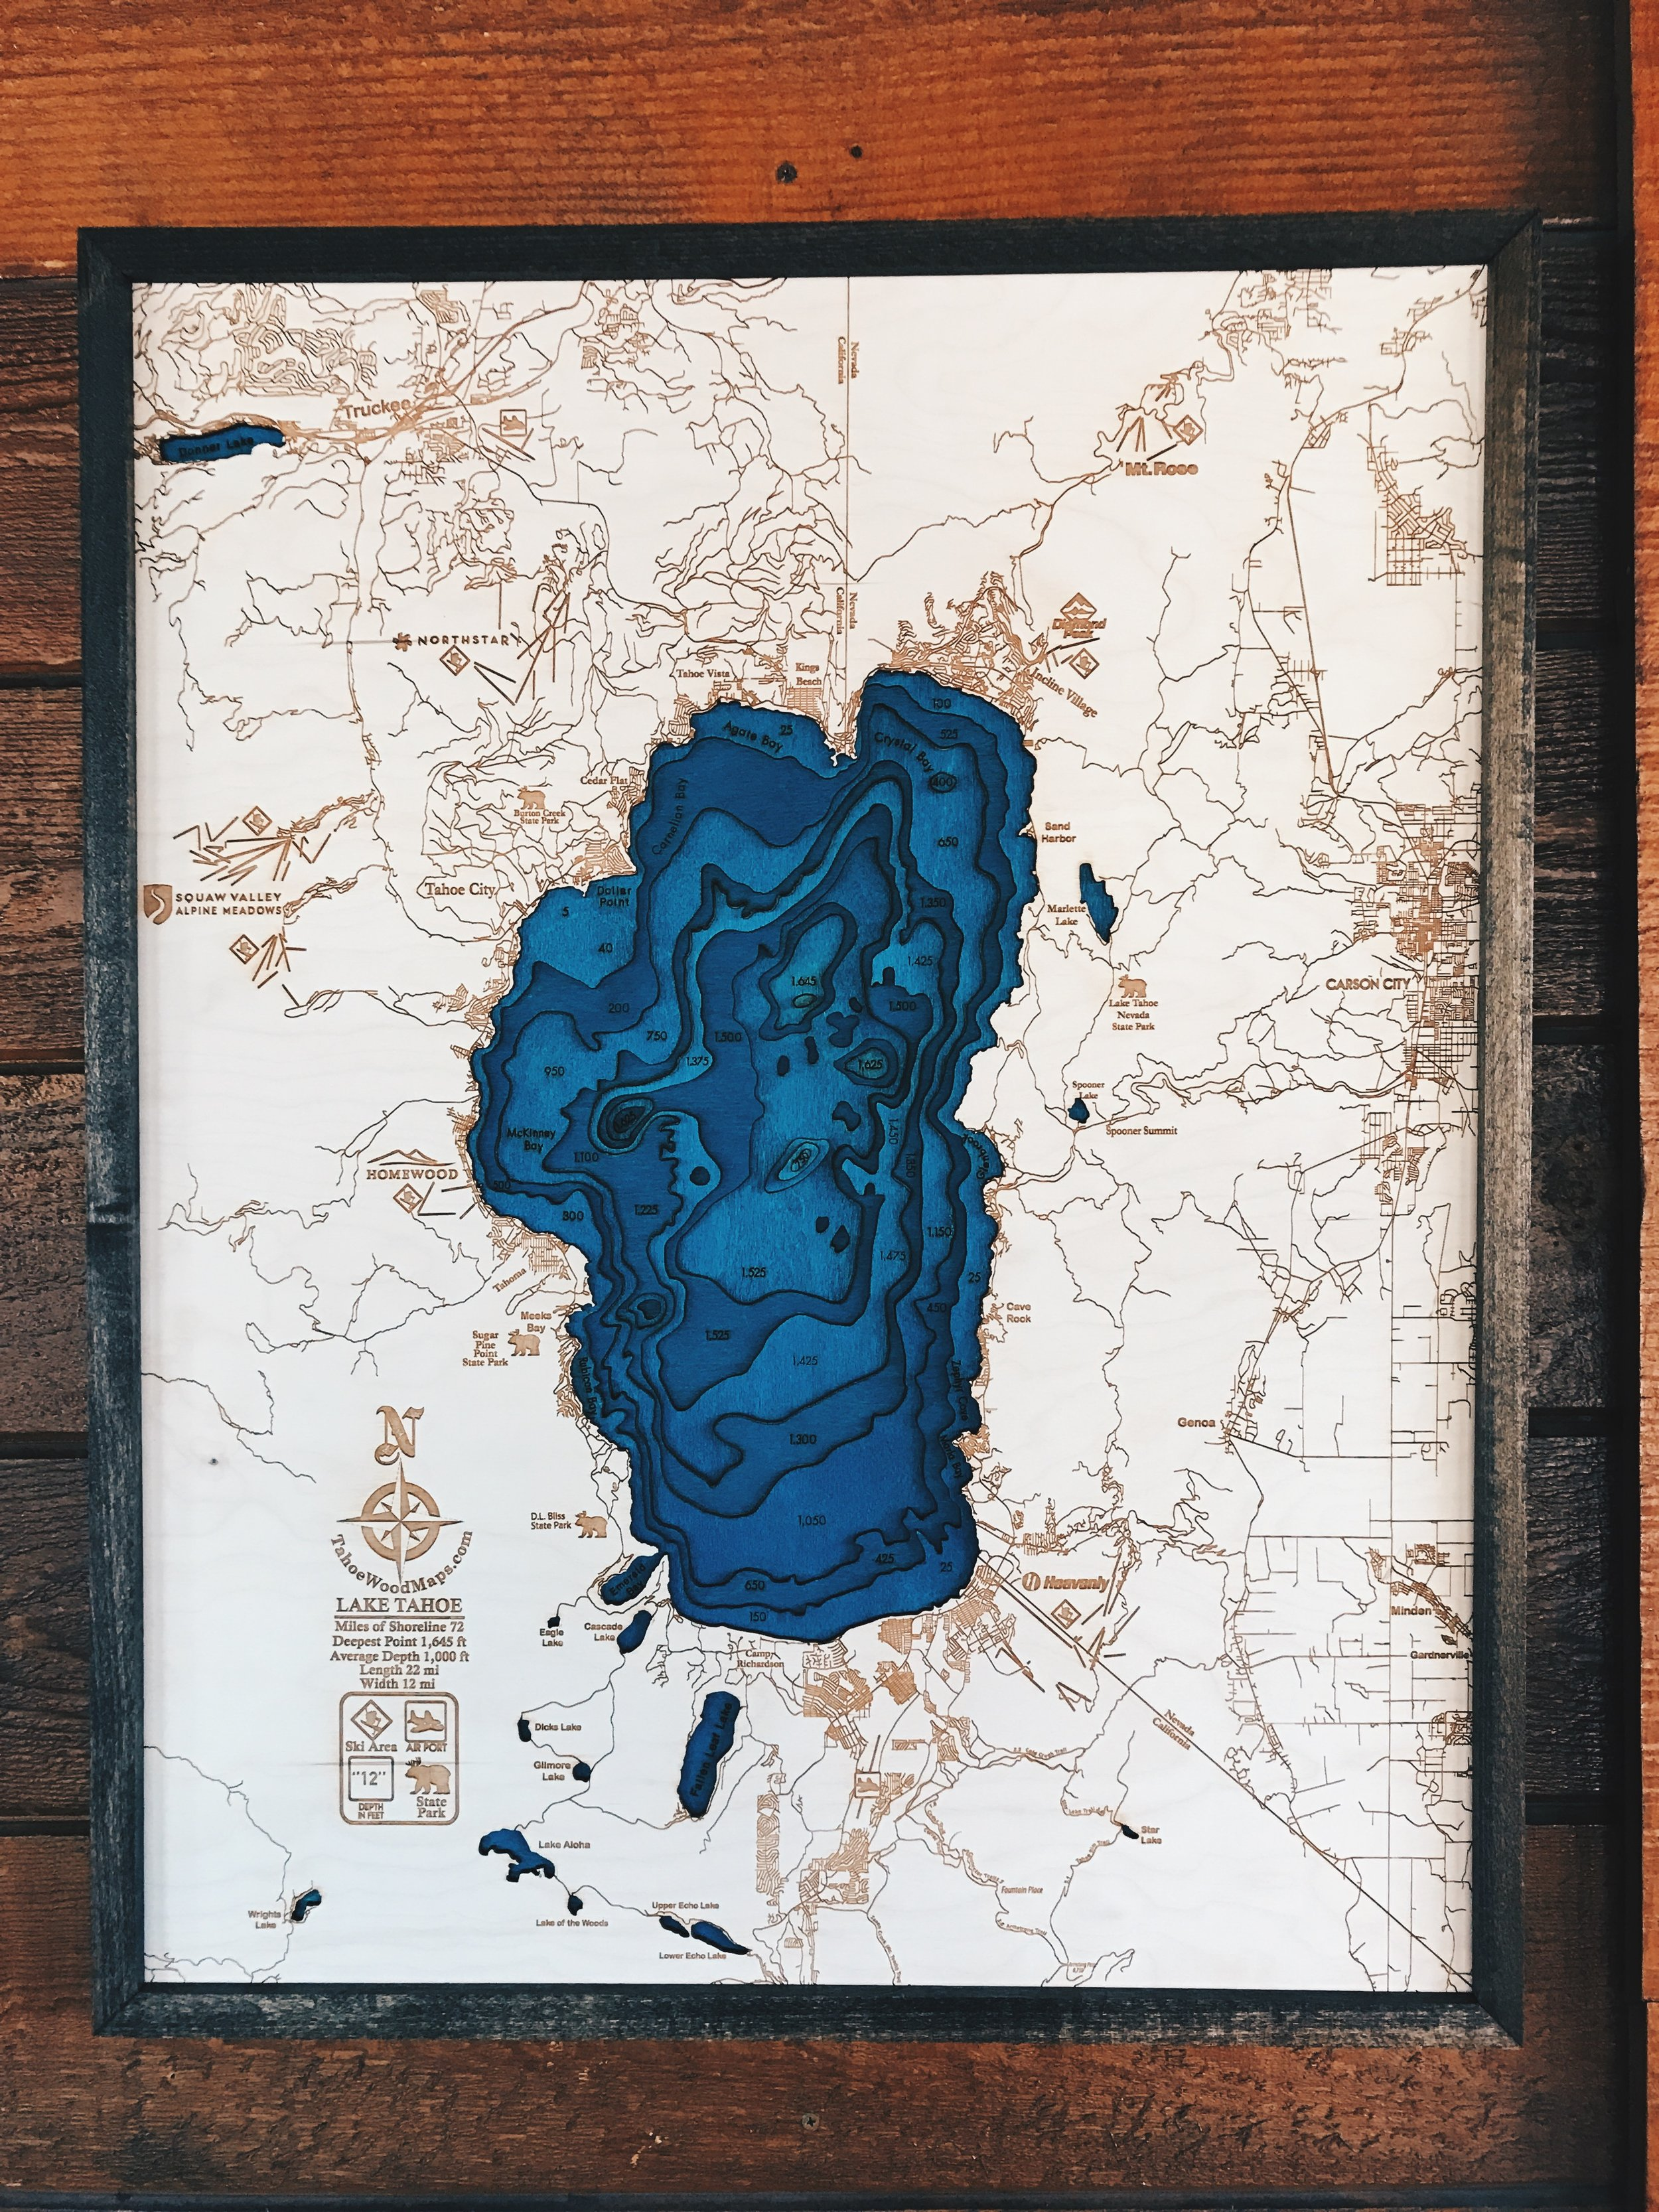 A cool Topographic map of the lake I found in one of the shops in the village